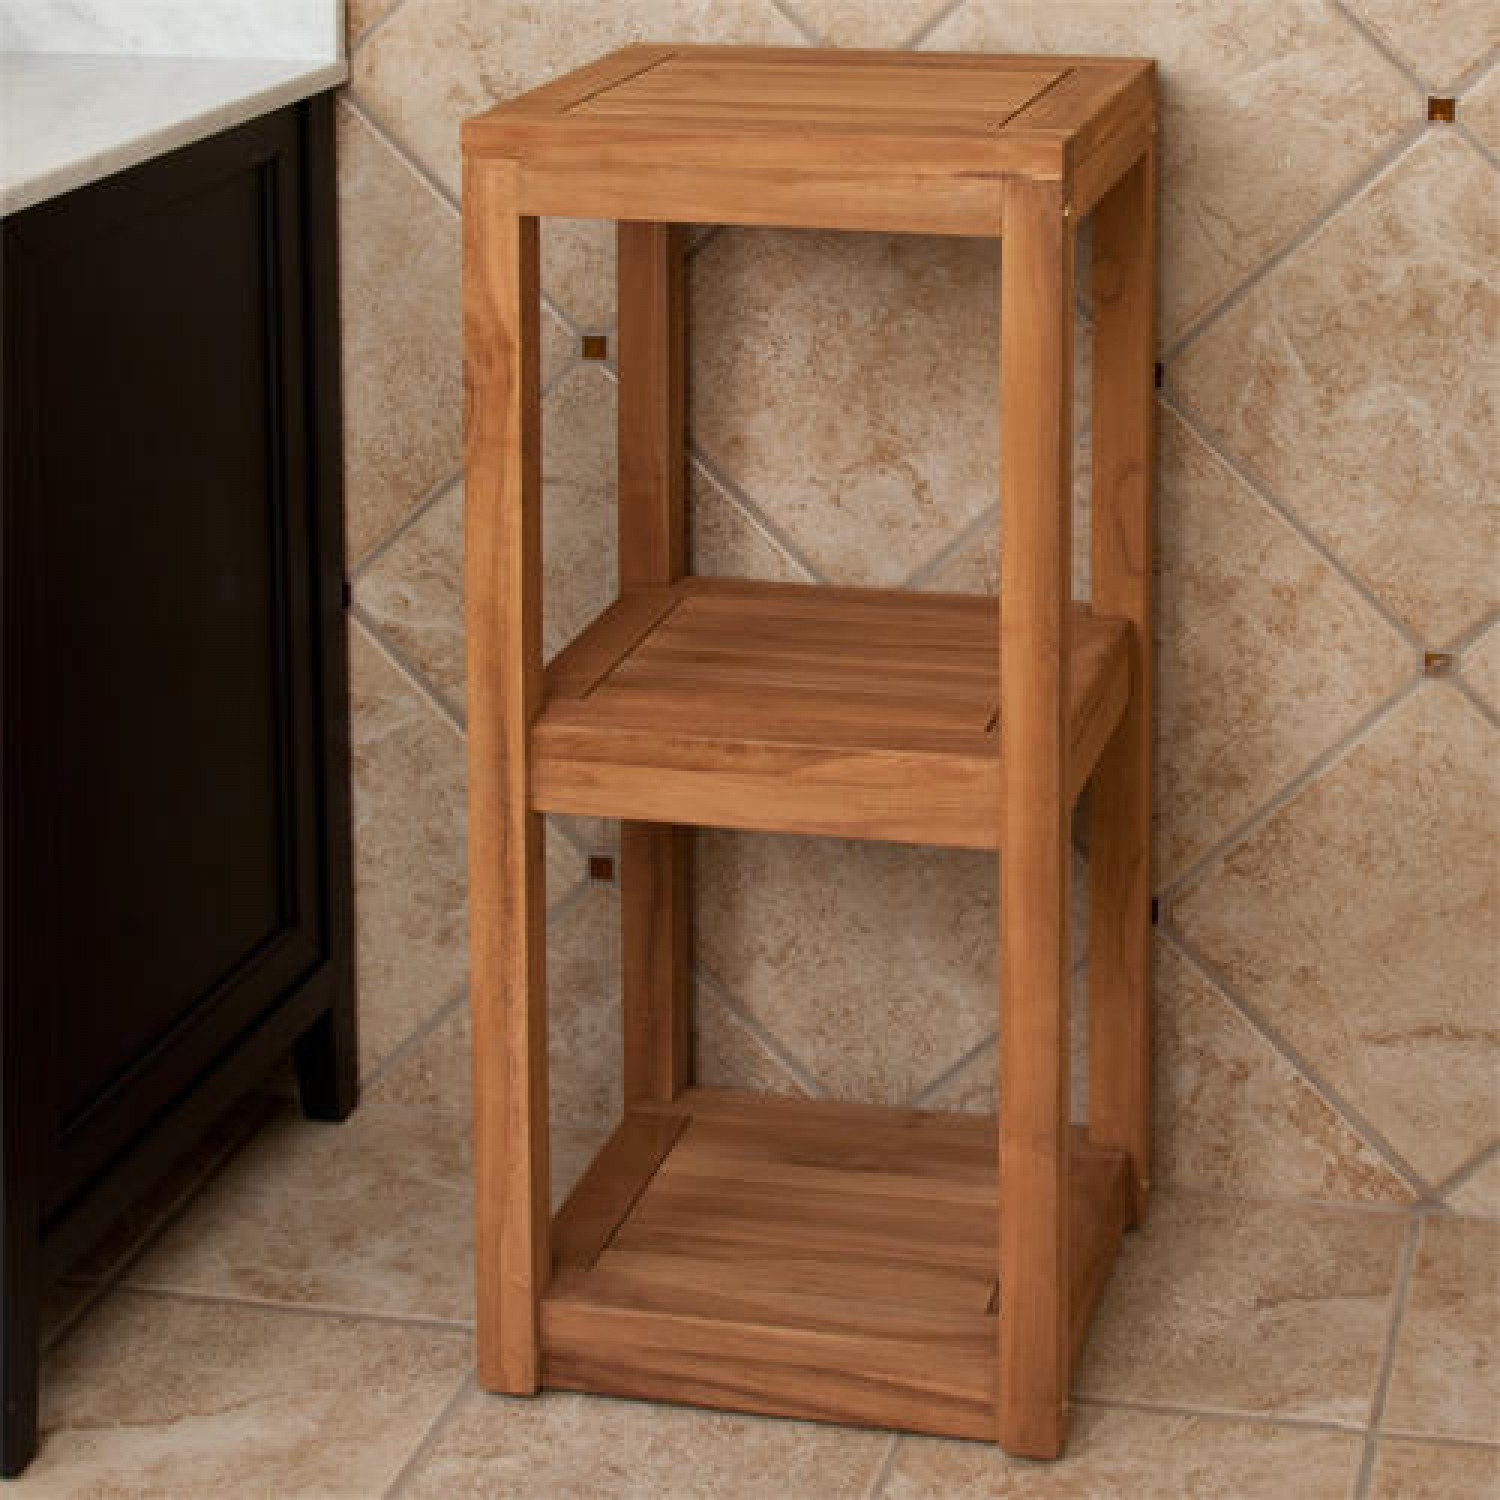 wood-towel-shelf | Netchanting